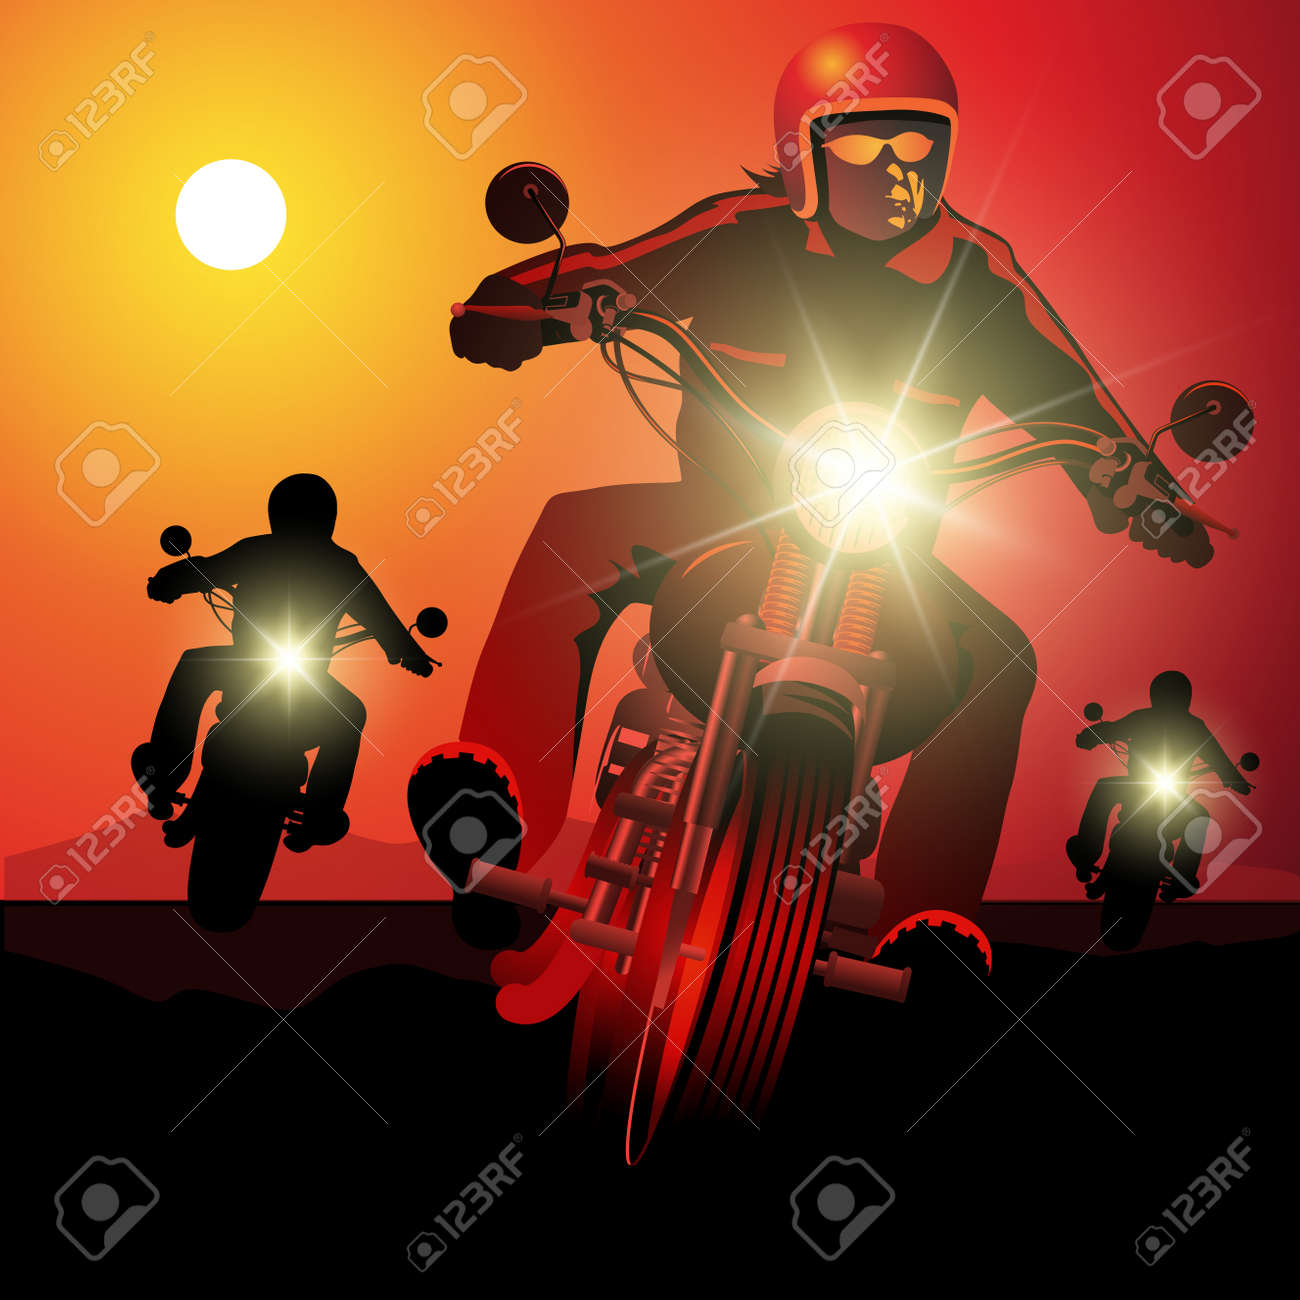 People driving motorcycles on sunset. - 40574531